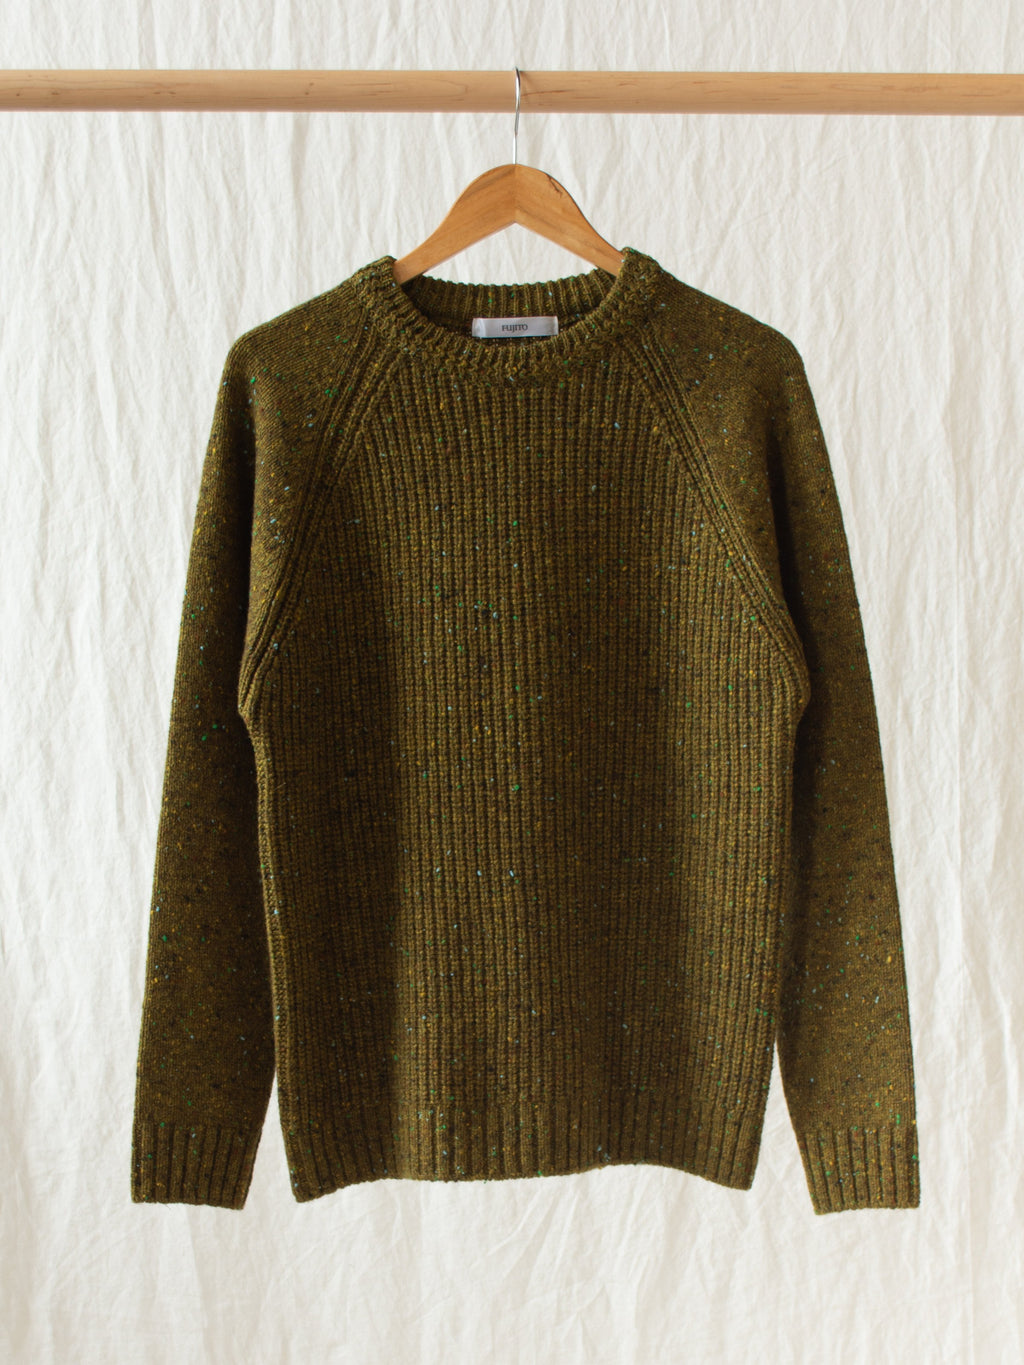 Crewneck Rib Sweater - Moss Speckle (re-stocked)